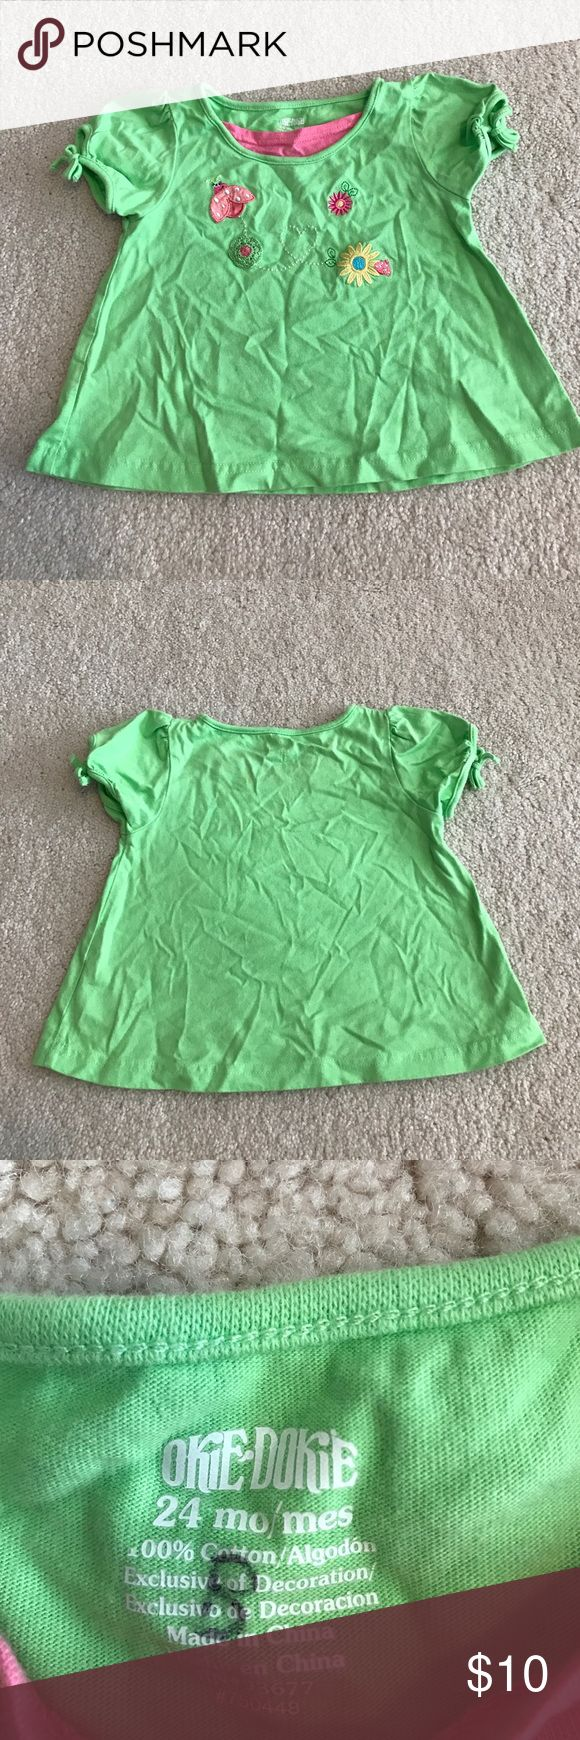 Okie Dokie girls lime green shirt sleeve top 24M Okie Dokie girls lime green top, size 24M. Has lady bug, and some flowers appliqué across chest, super cute! Excellent gently used condition no rips, stains or tears! okie dokie Shirts & Tops Tees - Short Sleeve